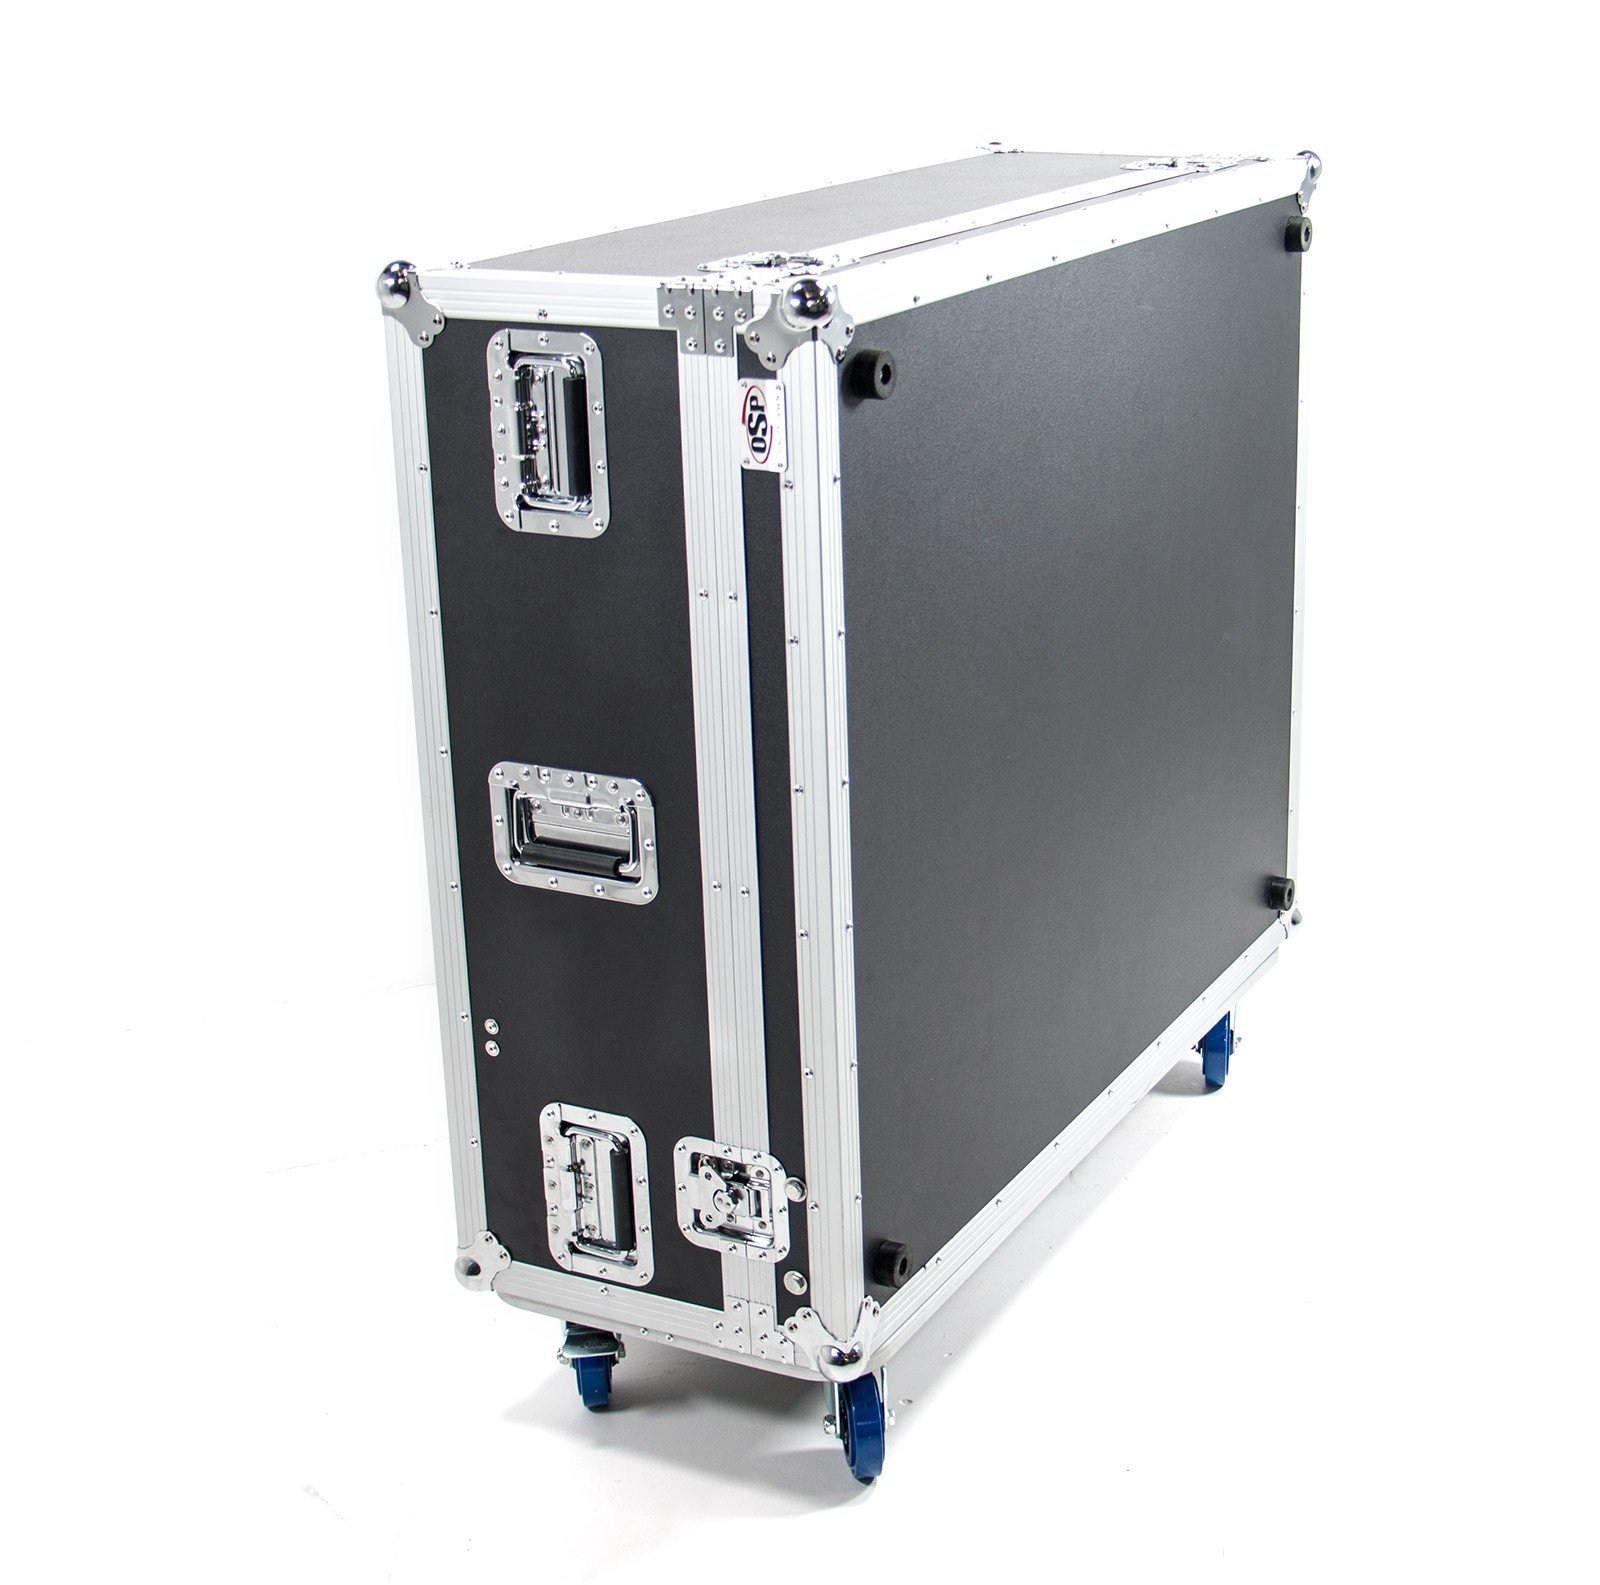 OSP Cases | ATA Road Case | Mixer Case for Yamaha CL5 Mixing Console with Doghouse | ATA-CL5-DH